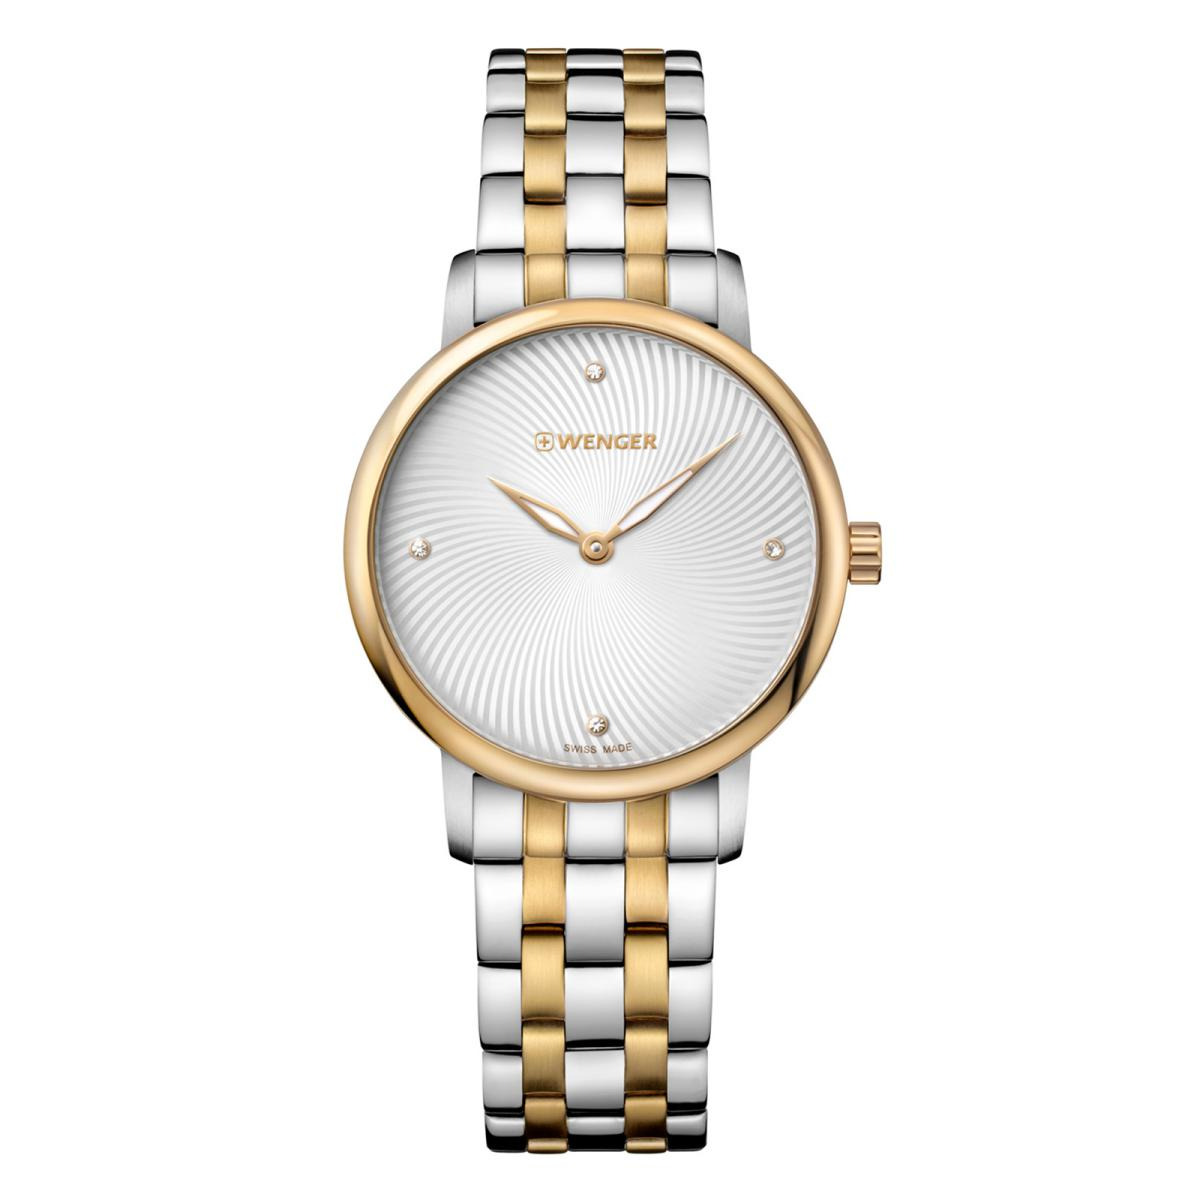 81c96a7bed7a Reloj Wenger - 01.1721.104 - Mujer - Time Square